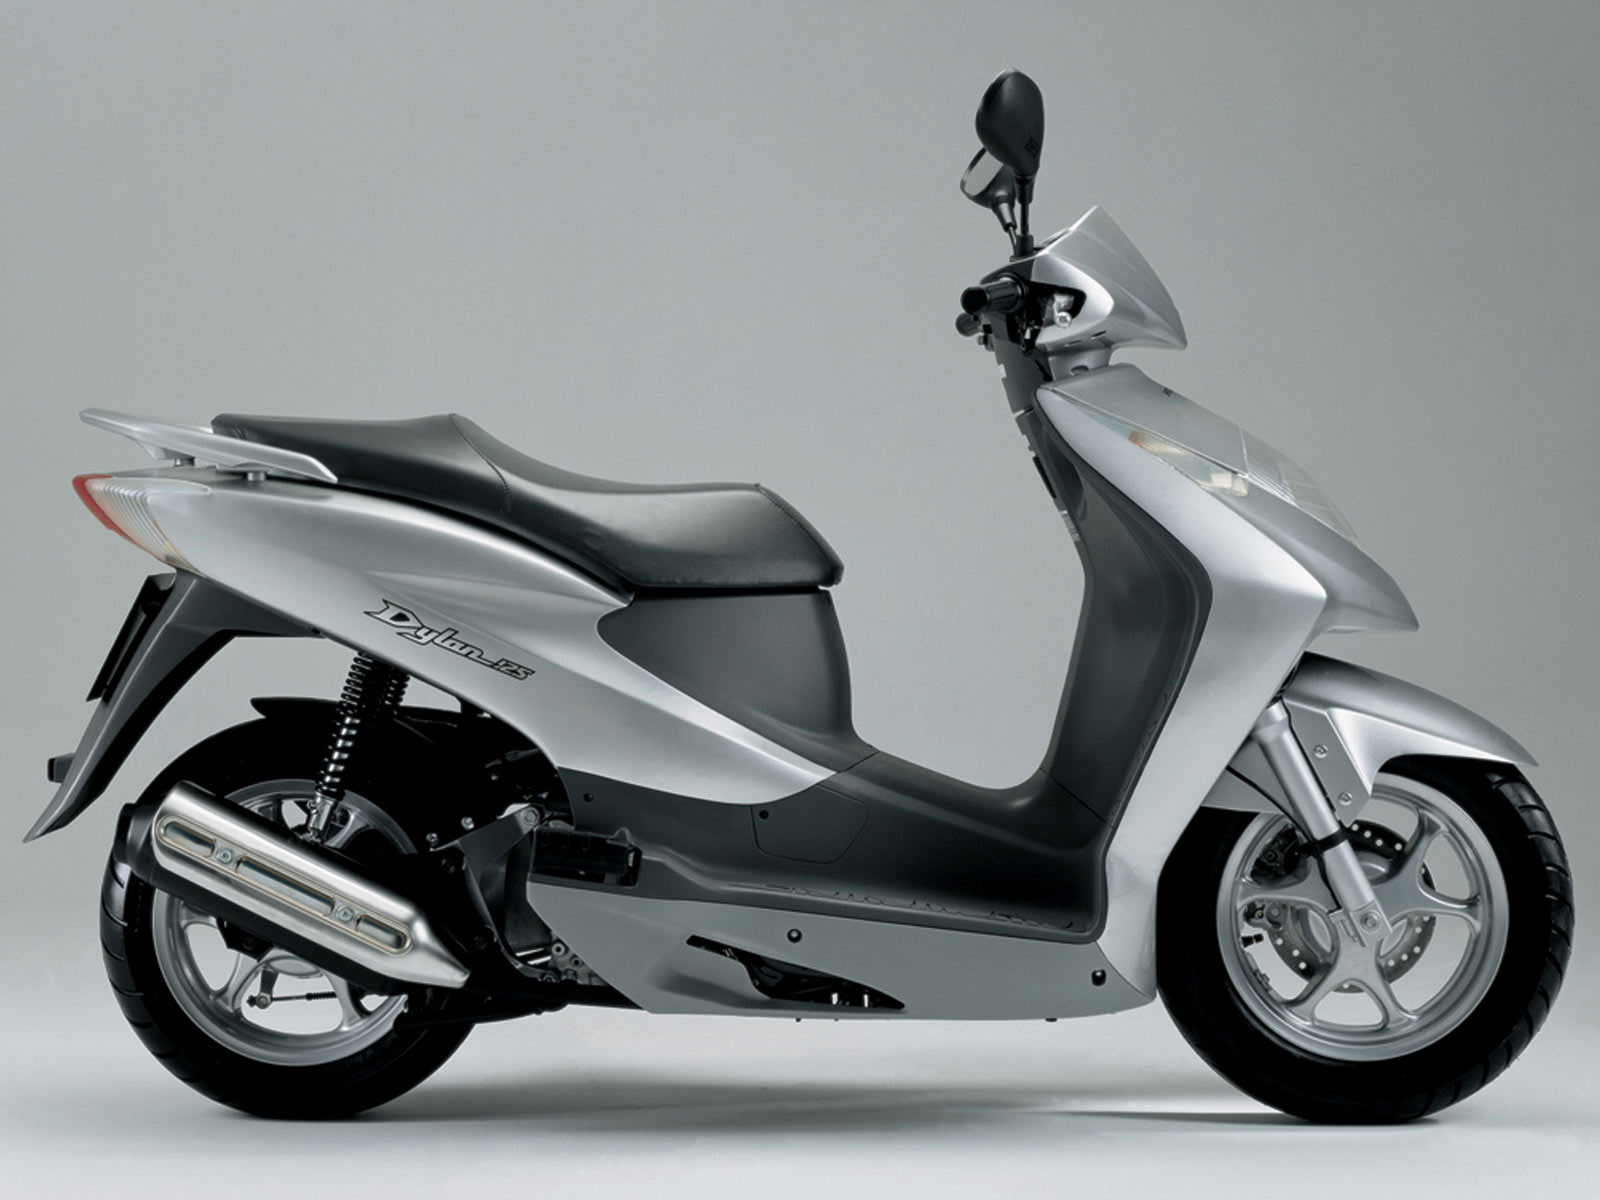 2004 honda dylan 125 scooter pictures accident lawyers info. Black Bedroom Furniture Sets. Home Design Ideas